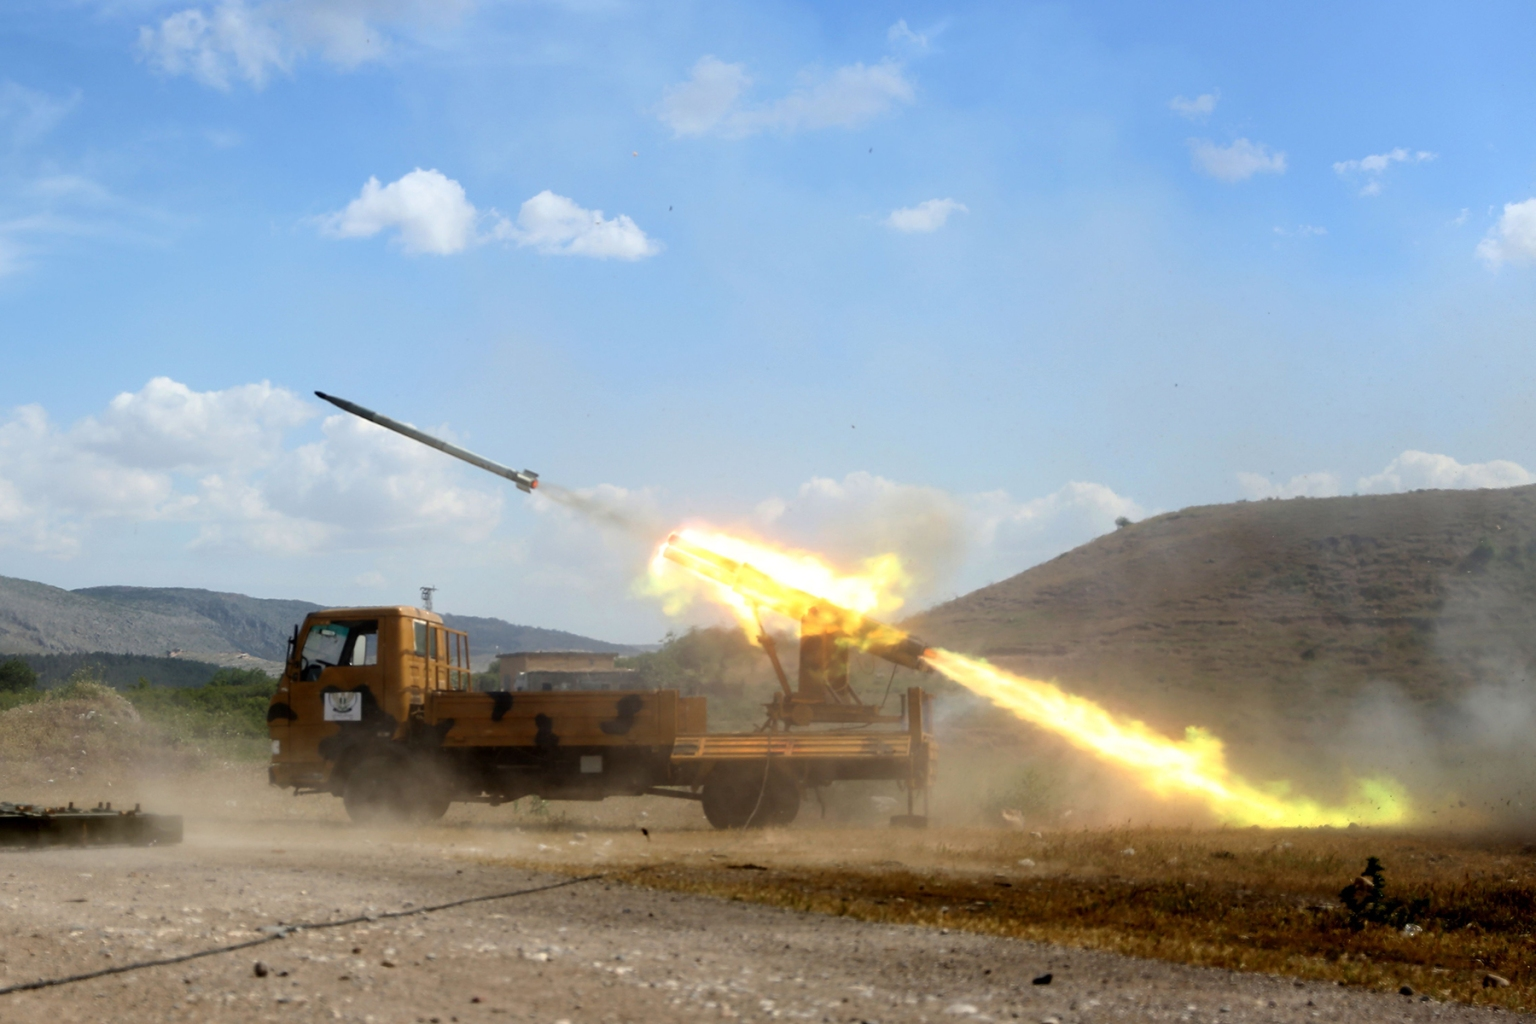 Syrian fighters from the Turkish-backed Hamza faction fire a missile from Syria's rebel-held Aleppo province toward regime-held areas on May 9. NAZEER AL-KHATIB/AFP/Getty Images